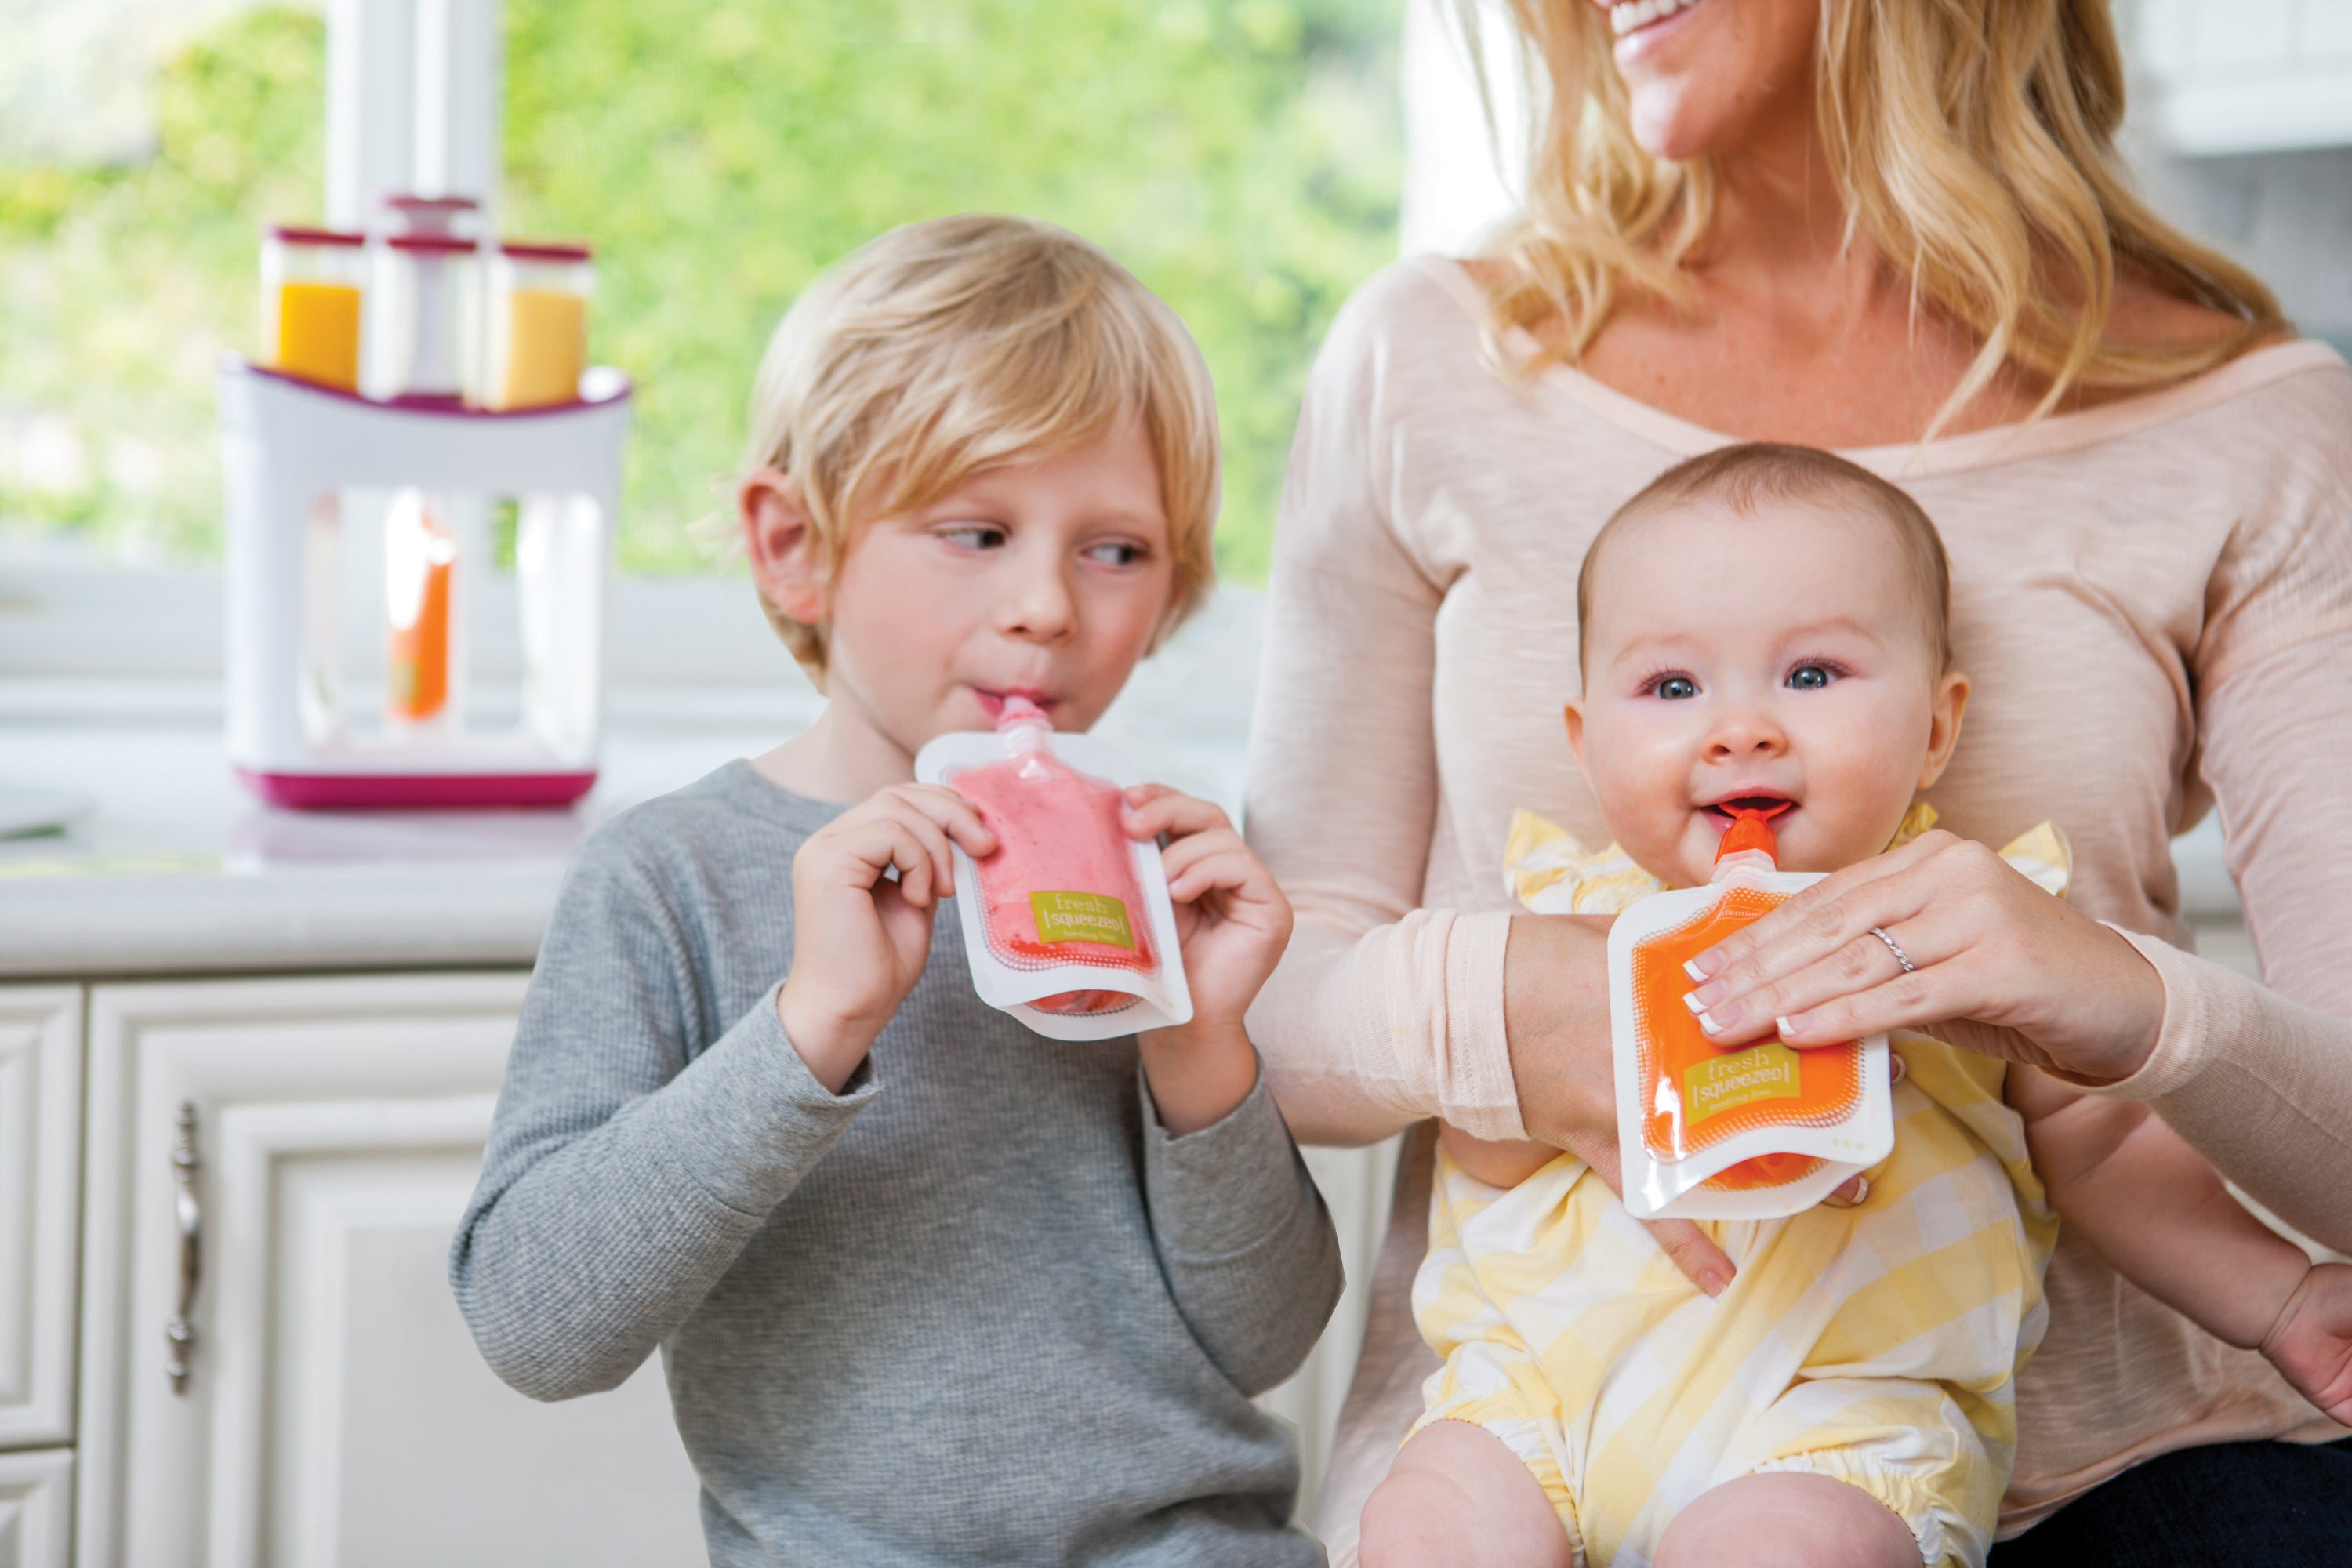 A baby and a toddler enjoy fresh Infantino Squeeze pouches